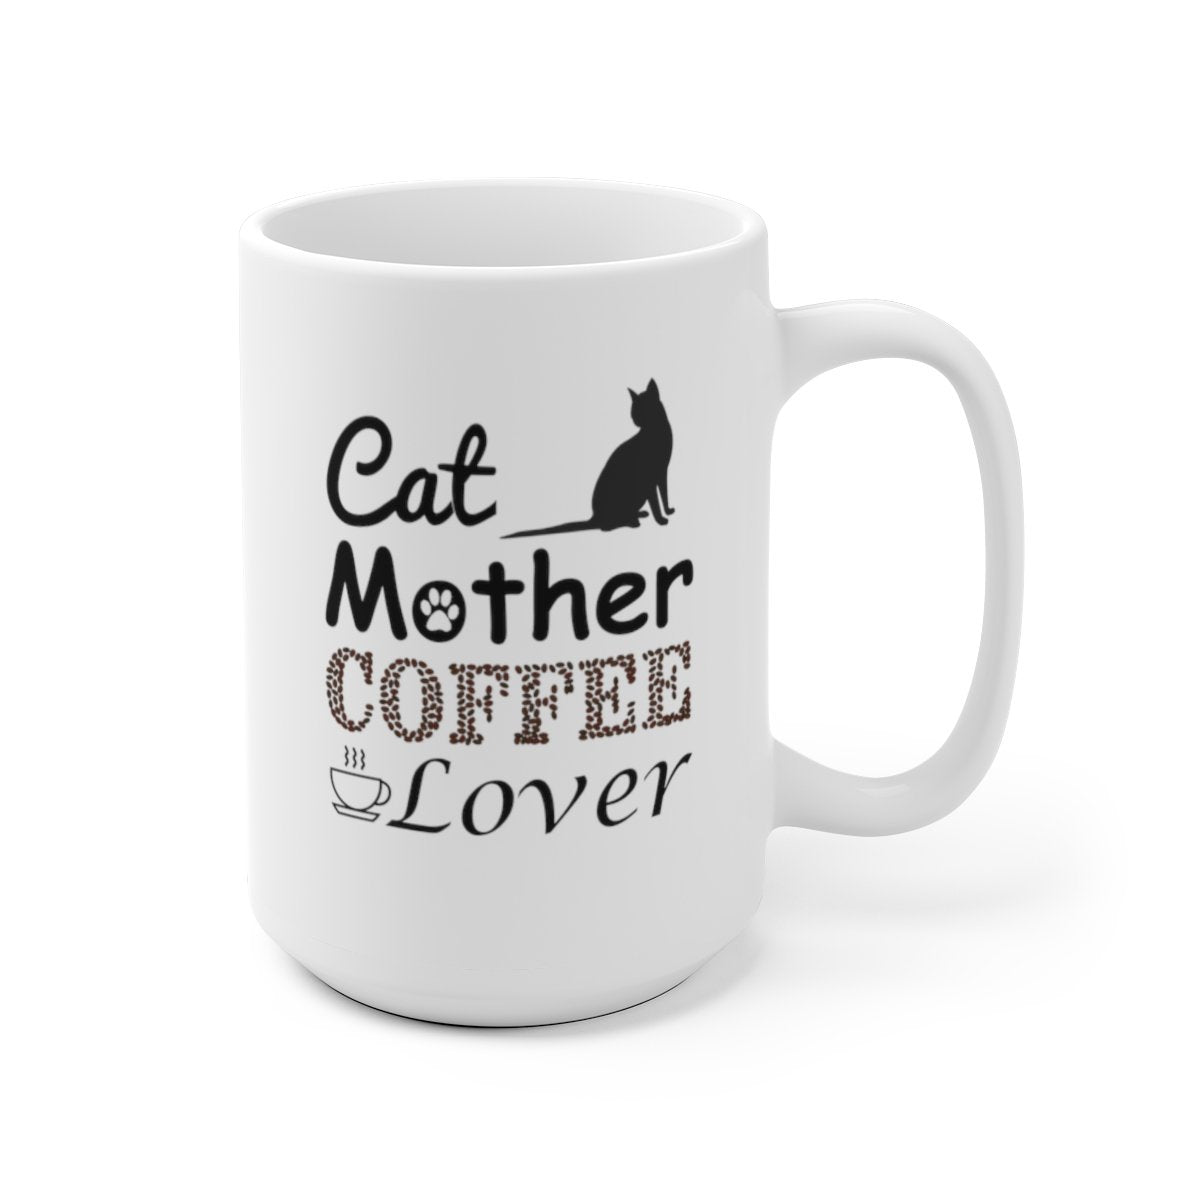 15oz cat mother coffee lover white mug